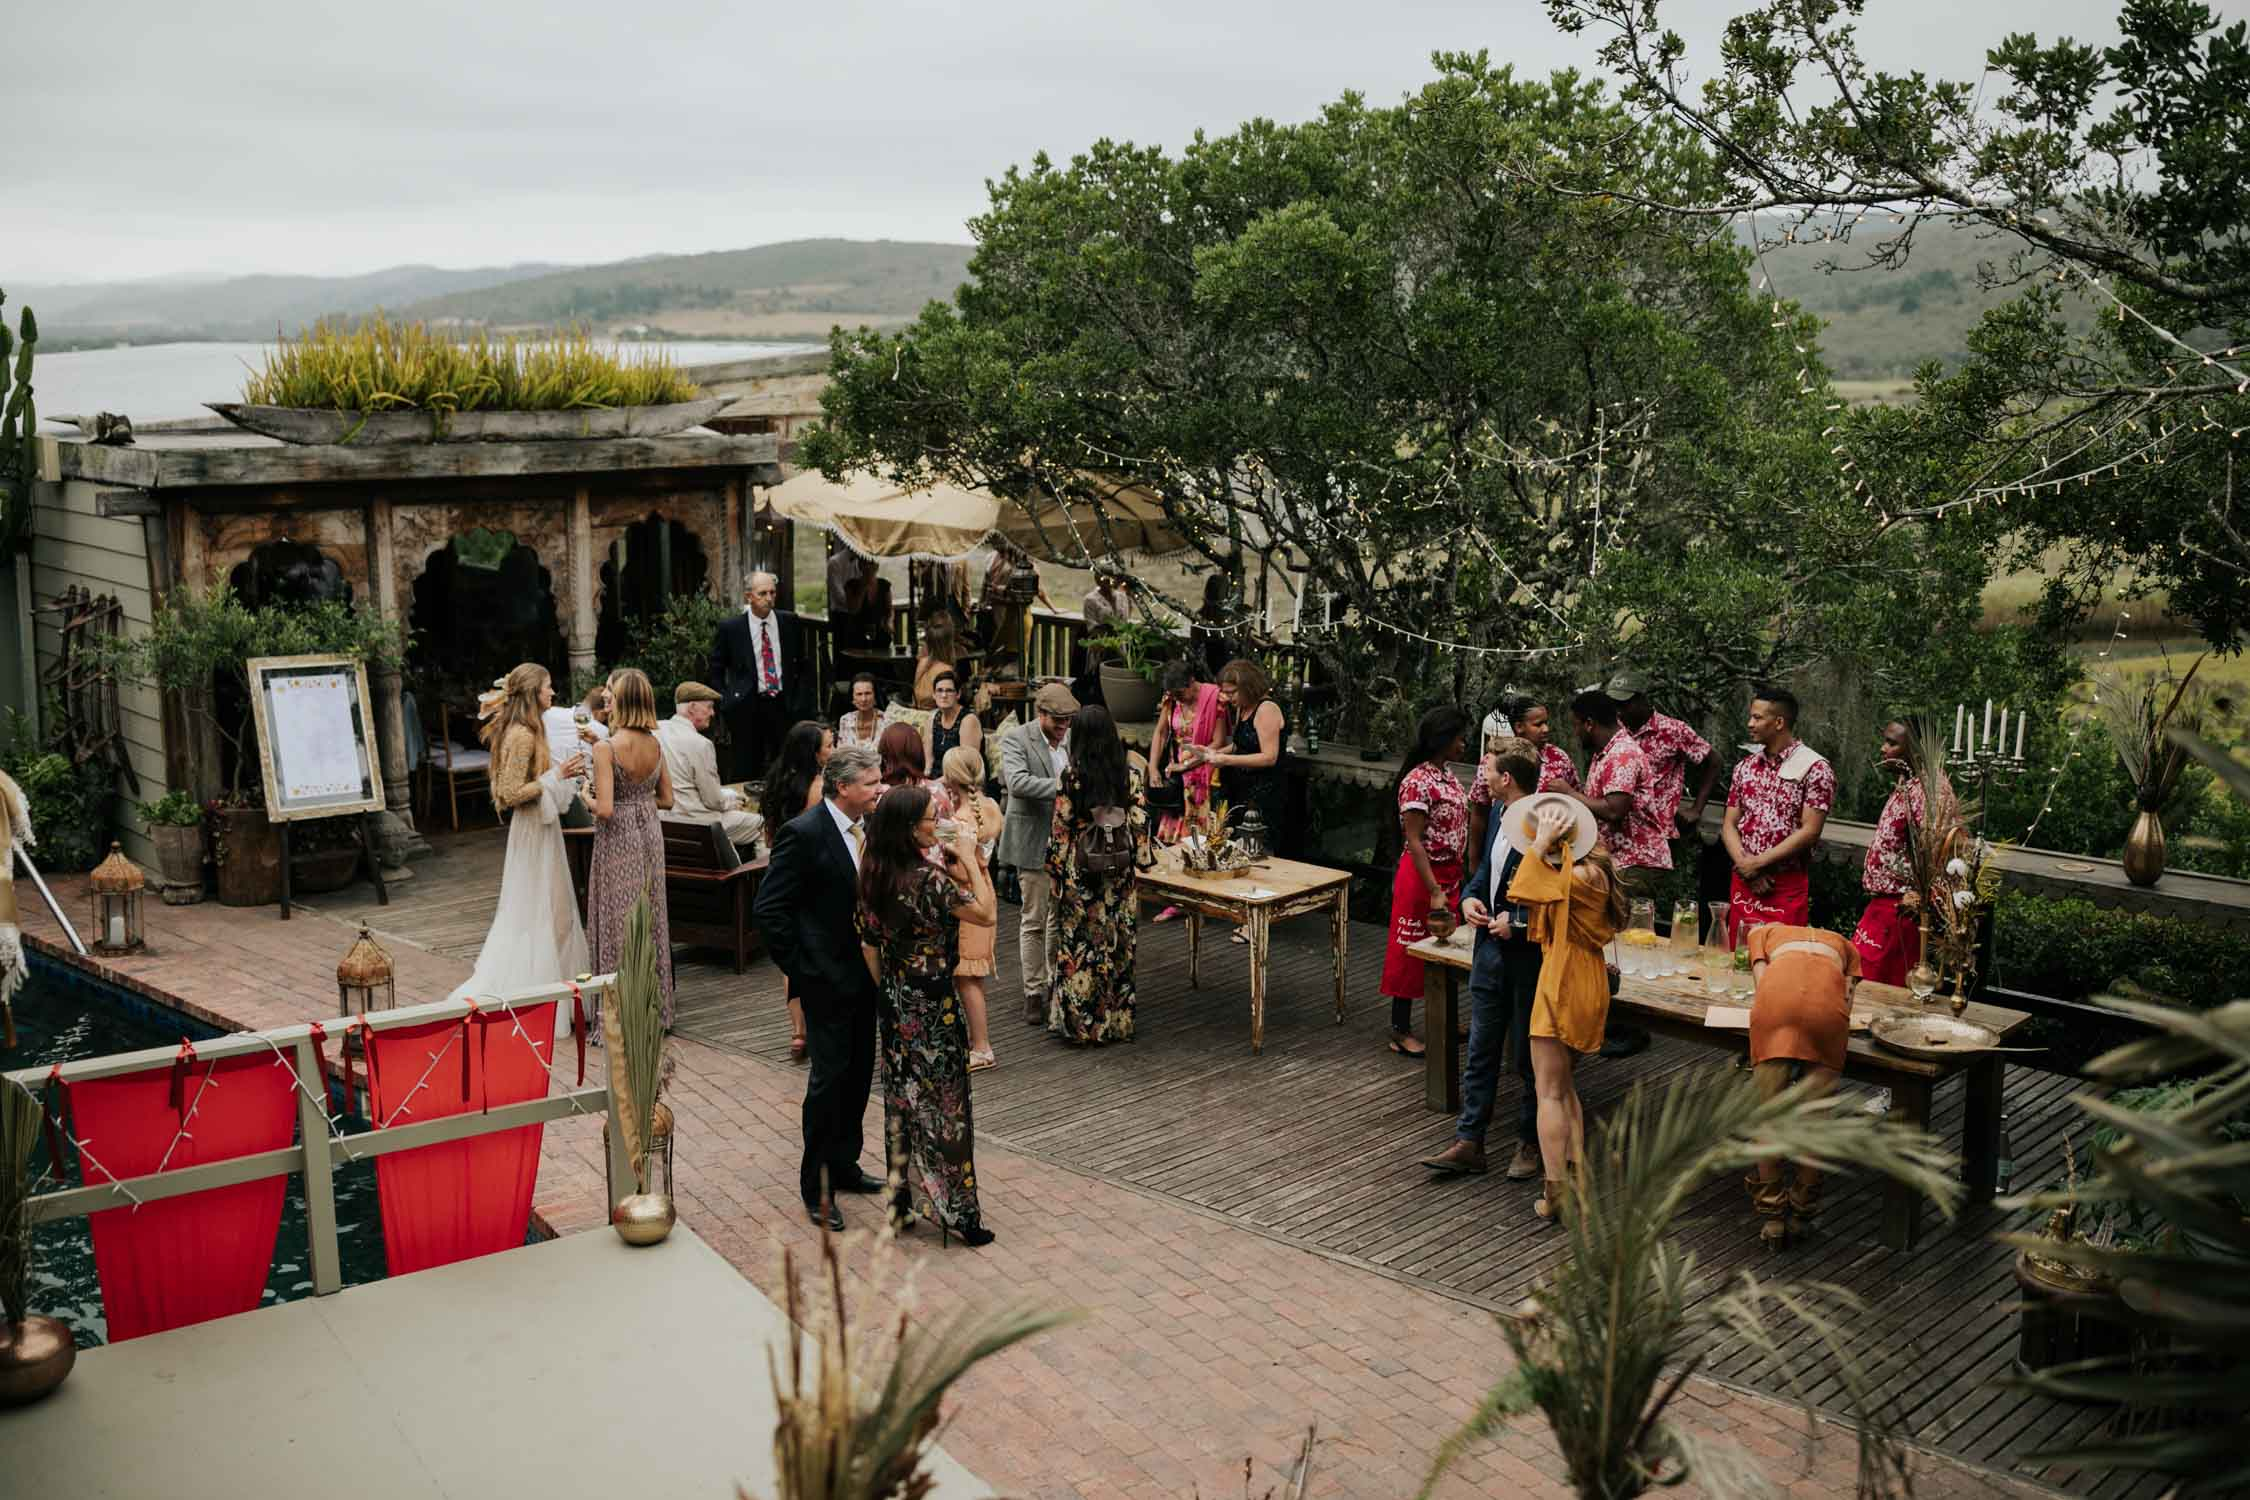 Emily Moon River Lodge wedding in Plett, Garden Route, South Africa